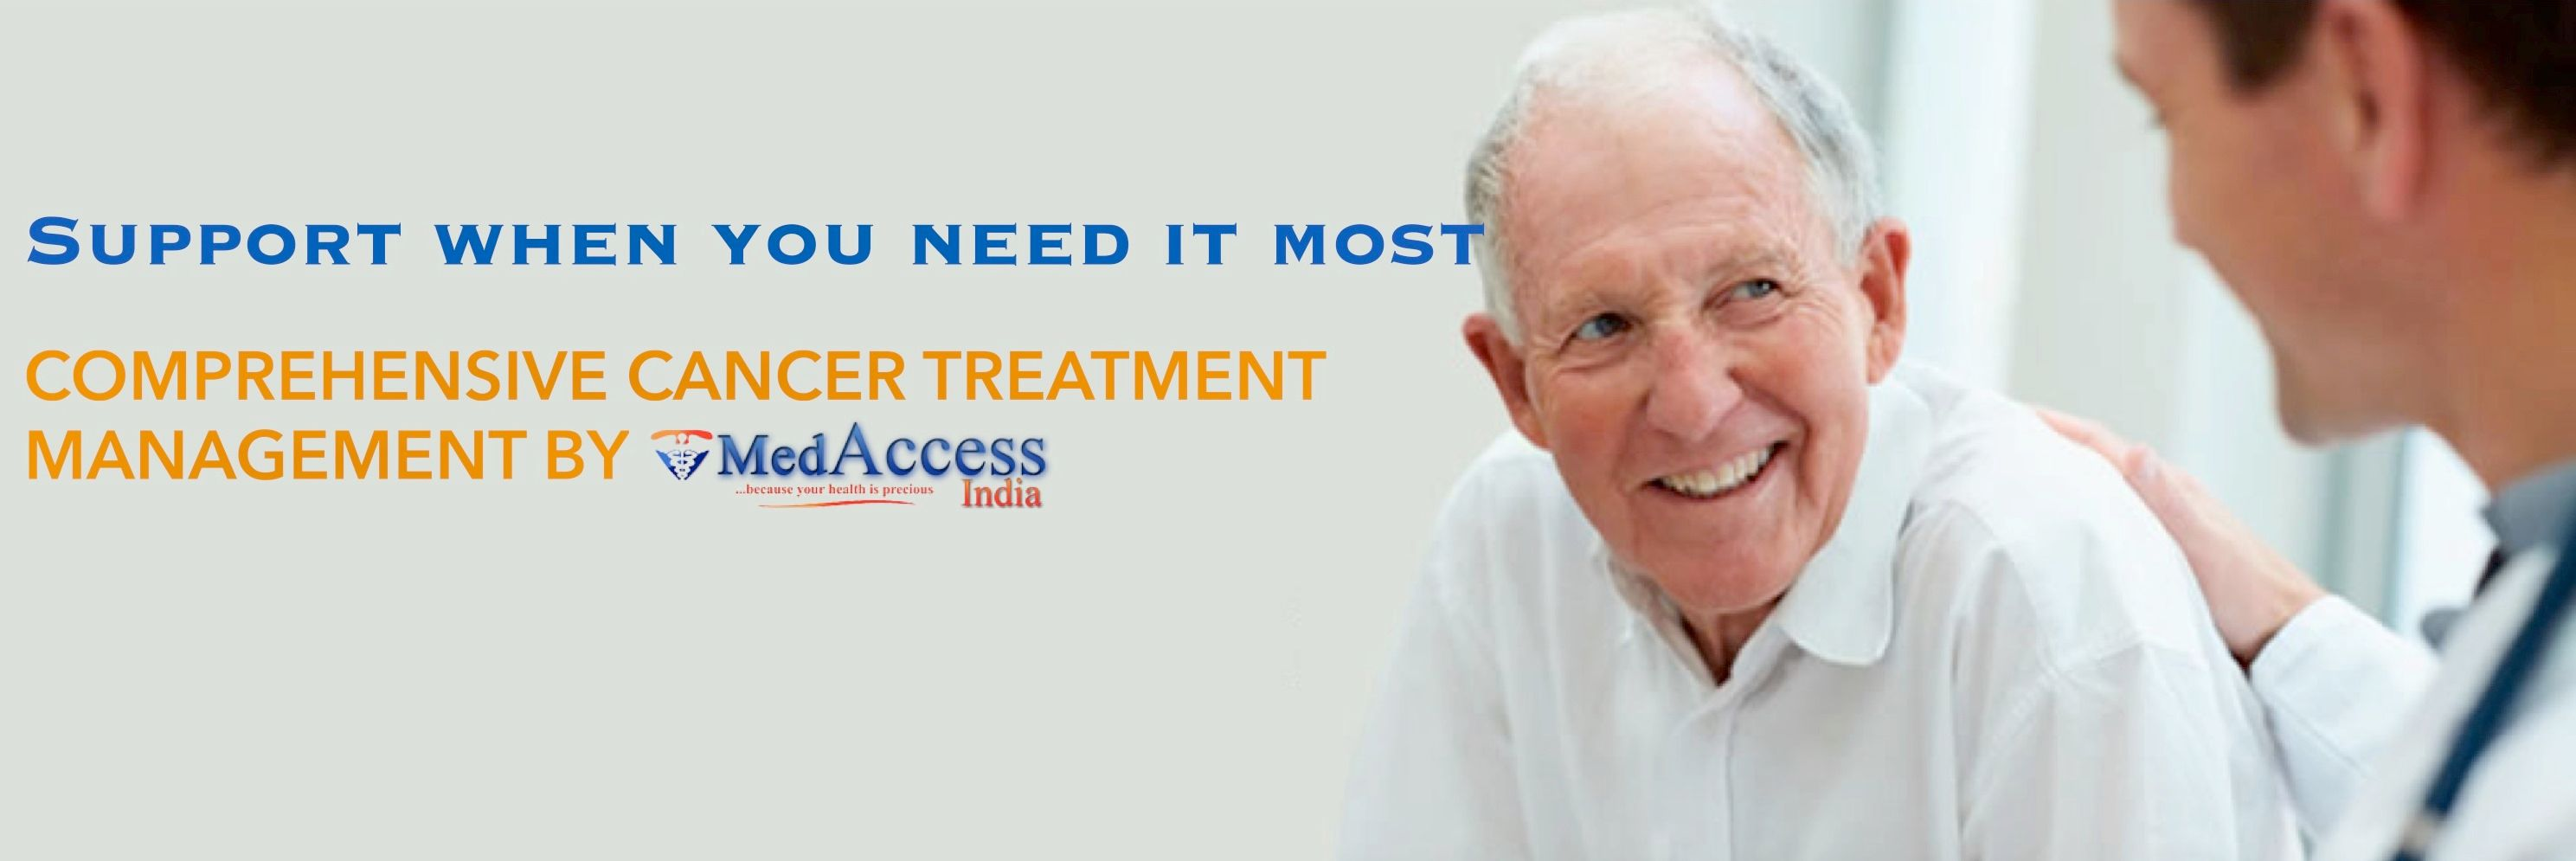 Low Cost Colon Cancer Treatment India Best Colon Cancer Treatment Hospital India